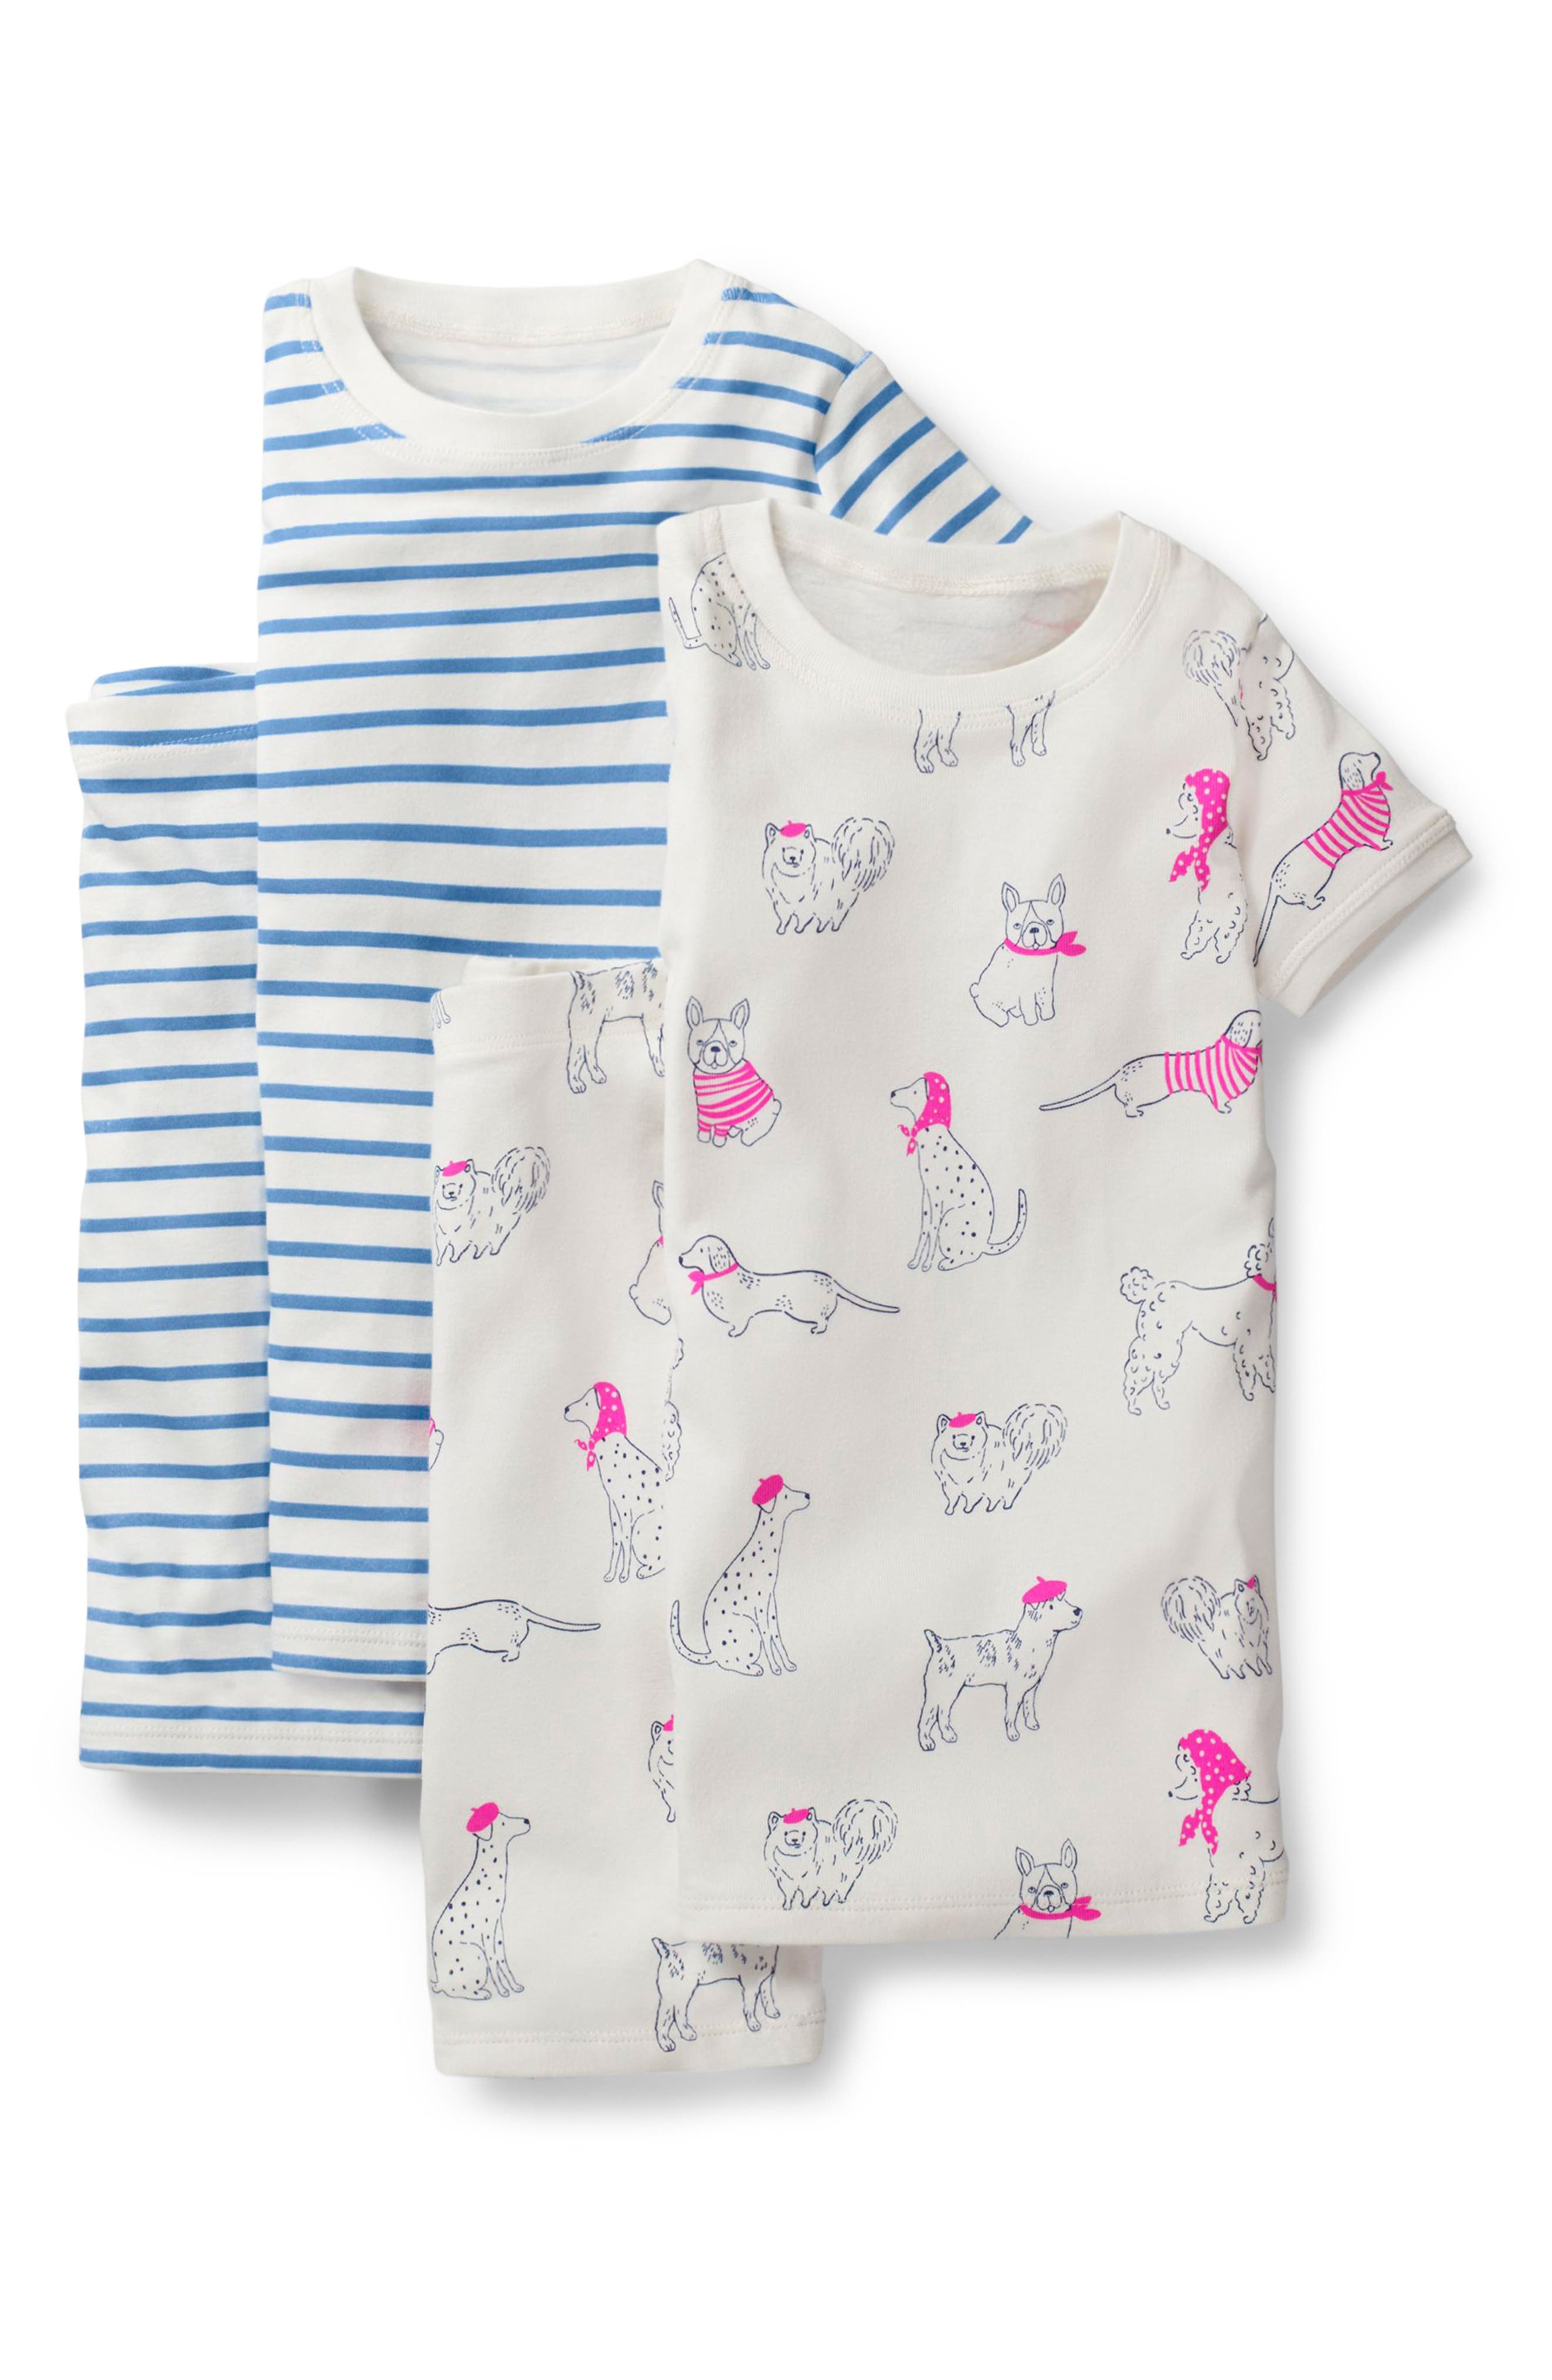 MINI BODEN 2-Pack Fitted Two-Piece Pajamas, Main, color, IVORY DOODLE DOGS/ LAKE BLUE